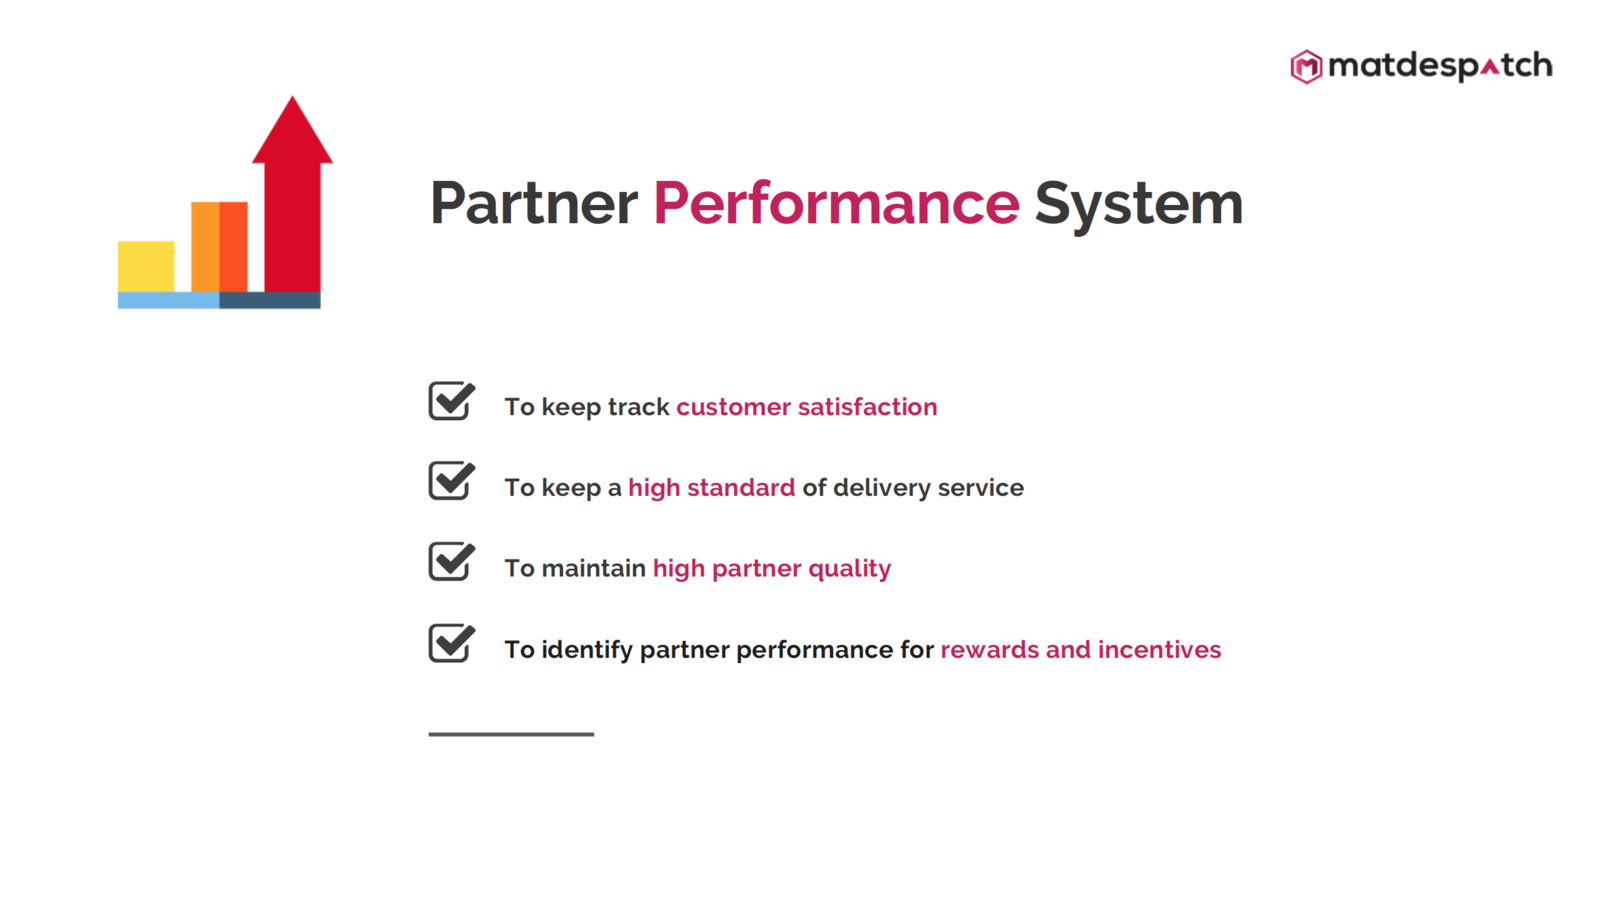 Matdespatch Partner Performance